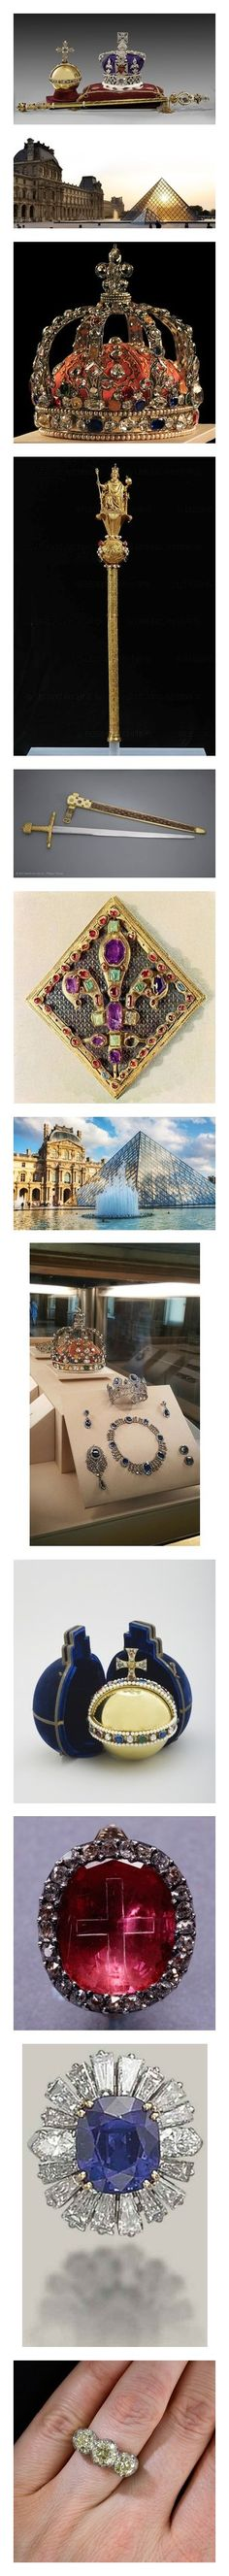 """""""Crown Jewels of the French Royal Family"""" by charlottebernadotte ❤ liked on Polyvore featuring accessories, eyewear, sunglasses, jewelry, rings, crucifix ring, cross ring, cross jewelry, cross jewellery and thin rings"""